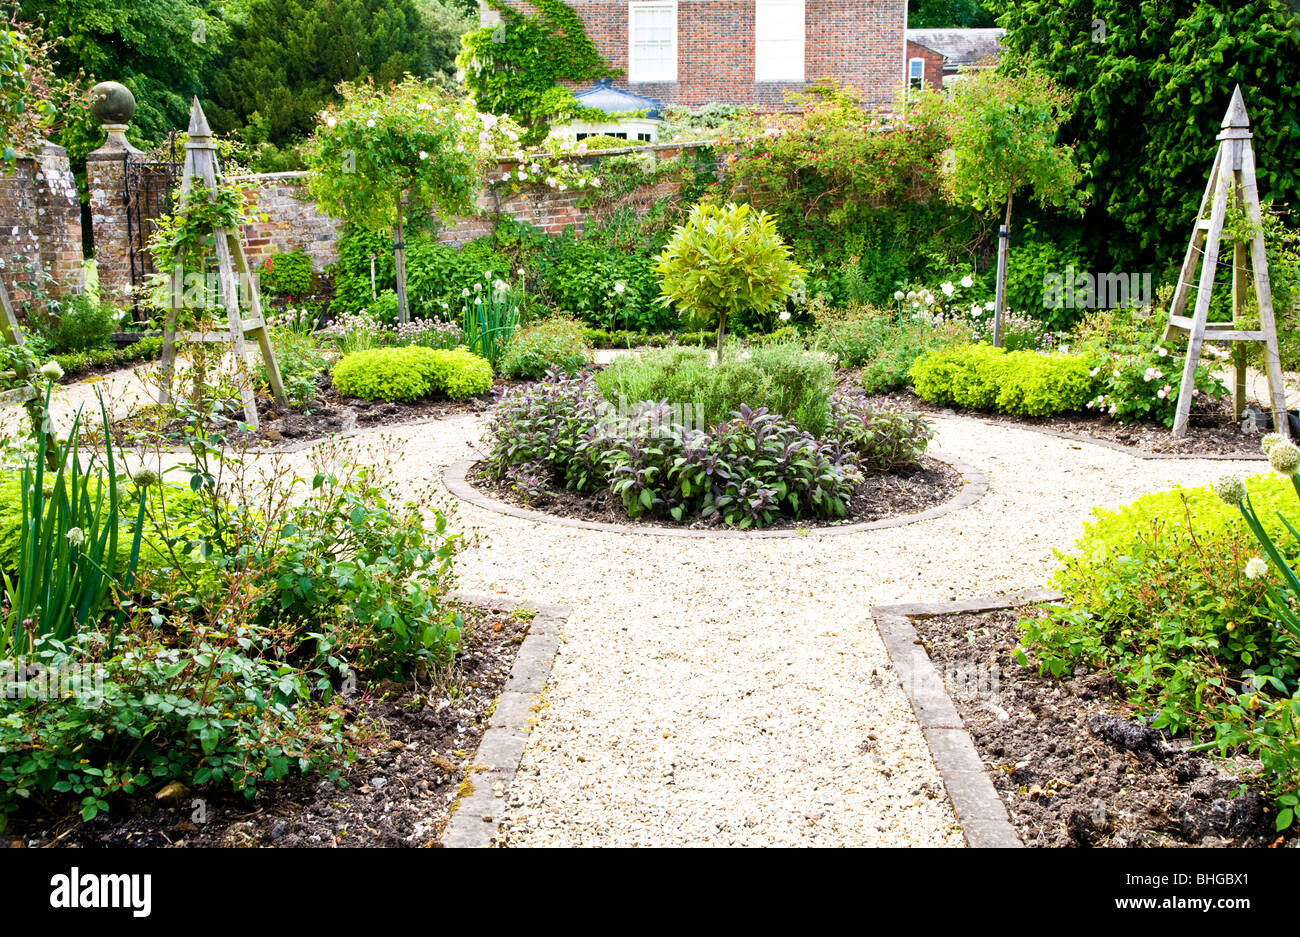 A formal herb or kitchen garden in the grounds of an English country house or manor - Stock Image